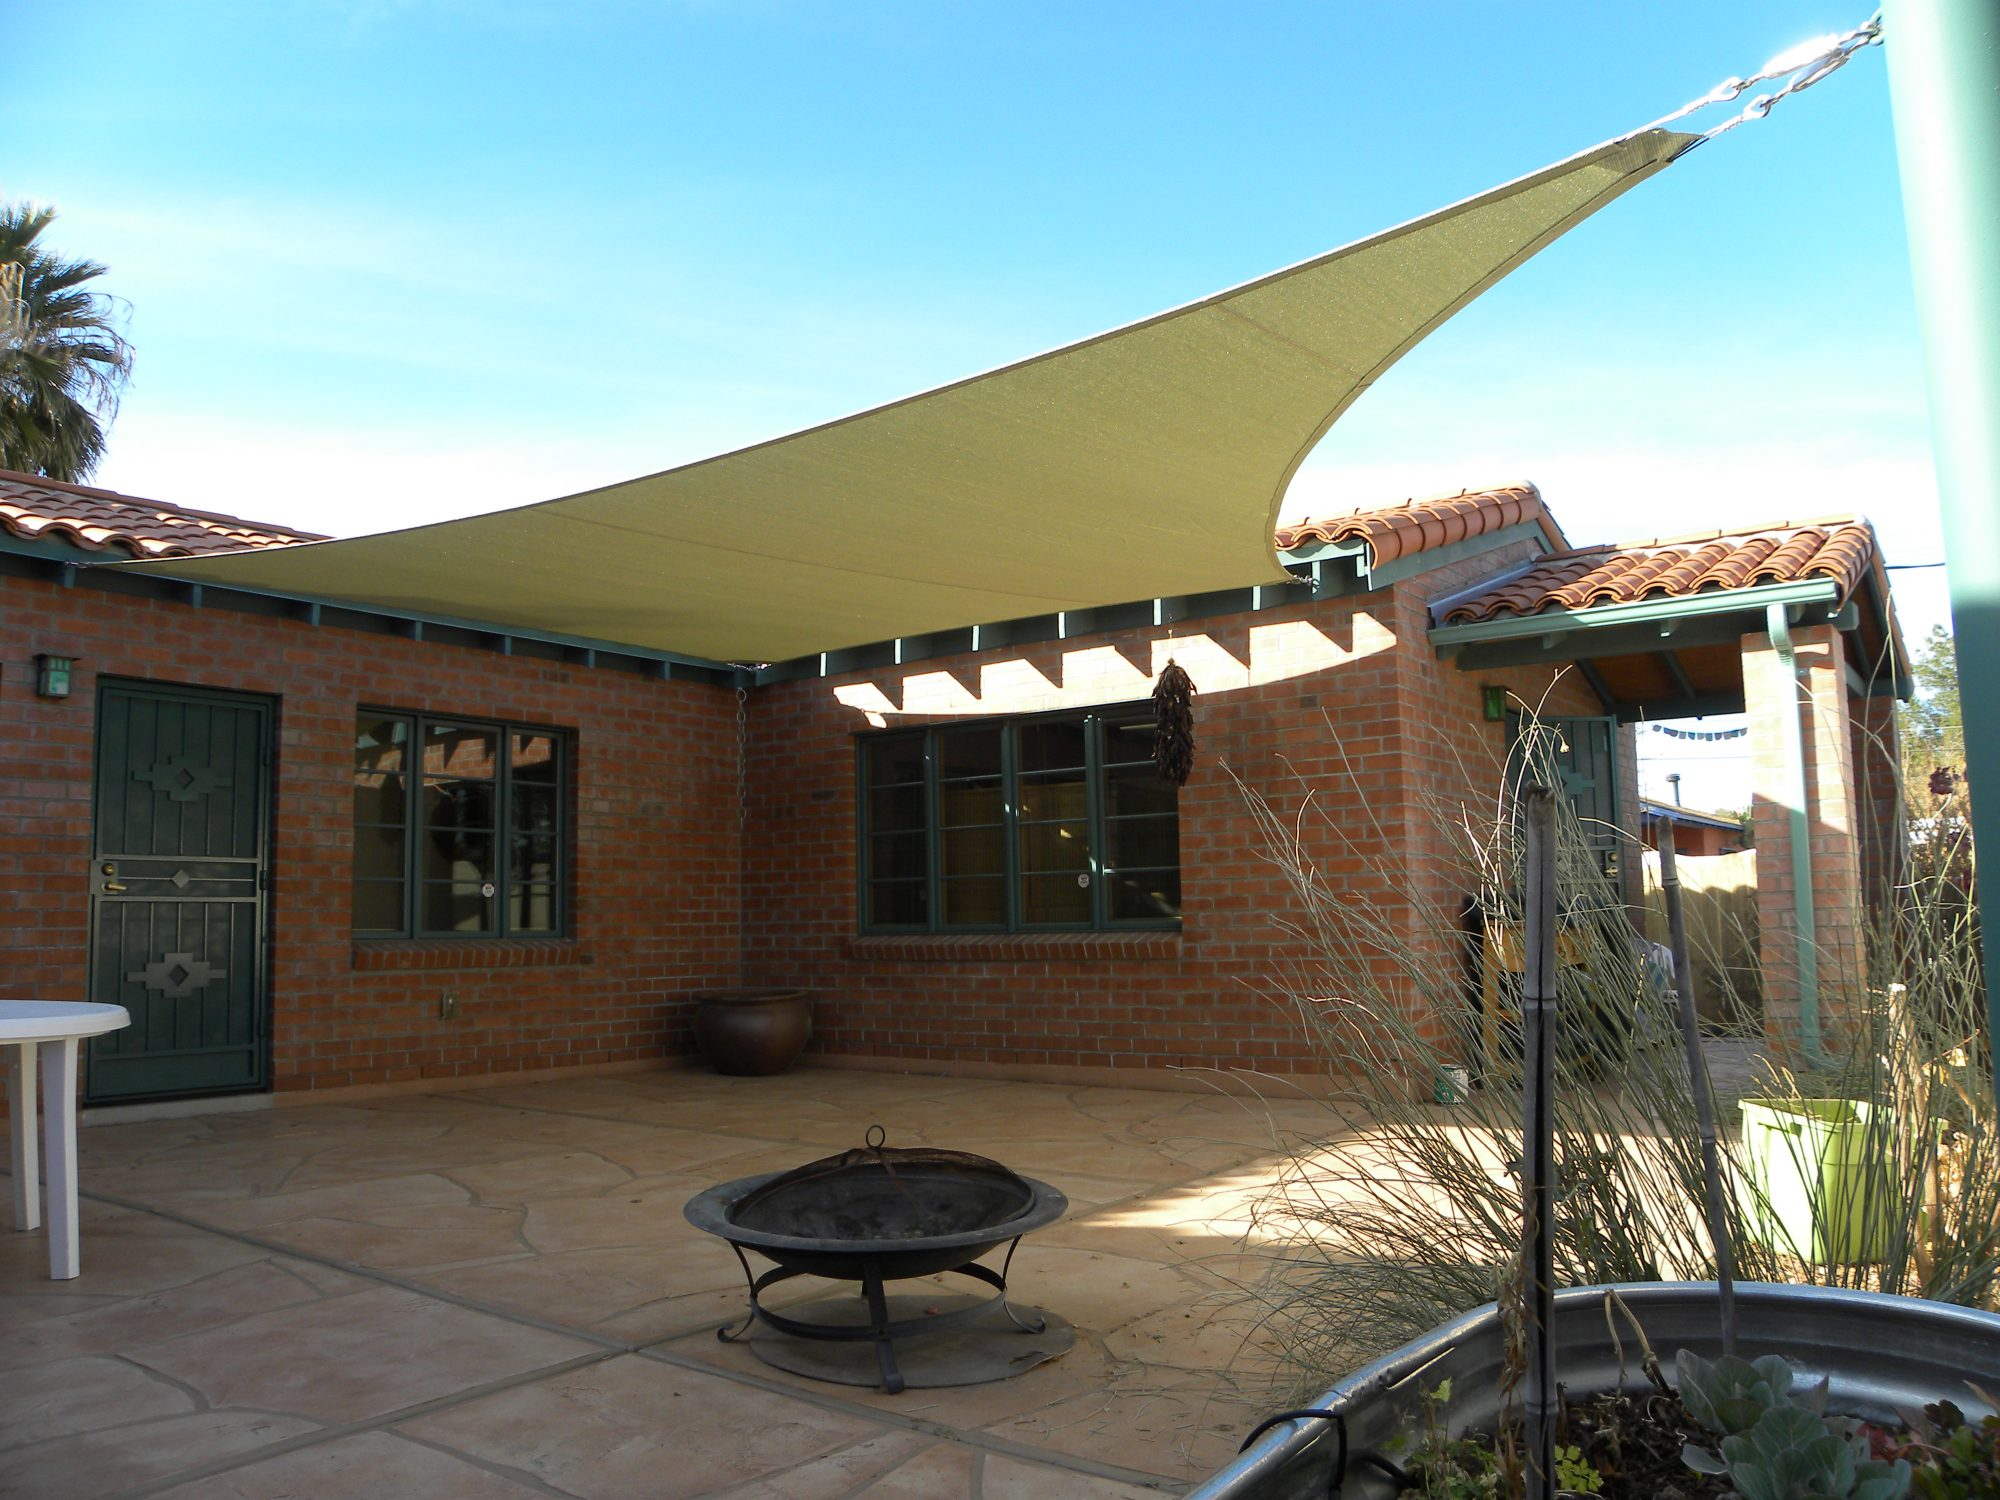 awning sun gutters awnings home beautiful deck all about shade of